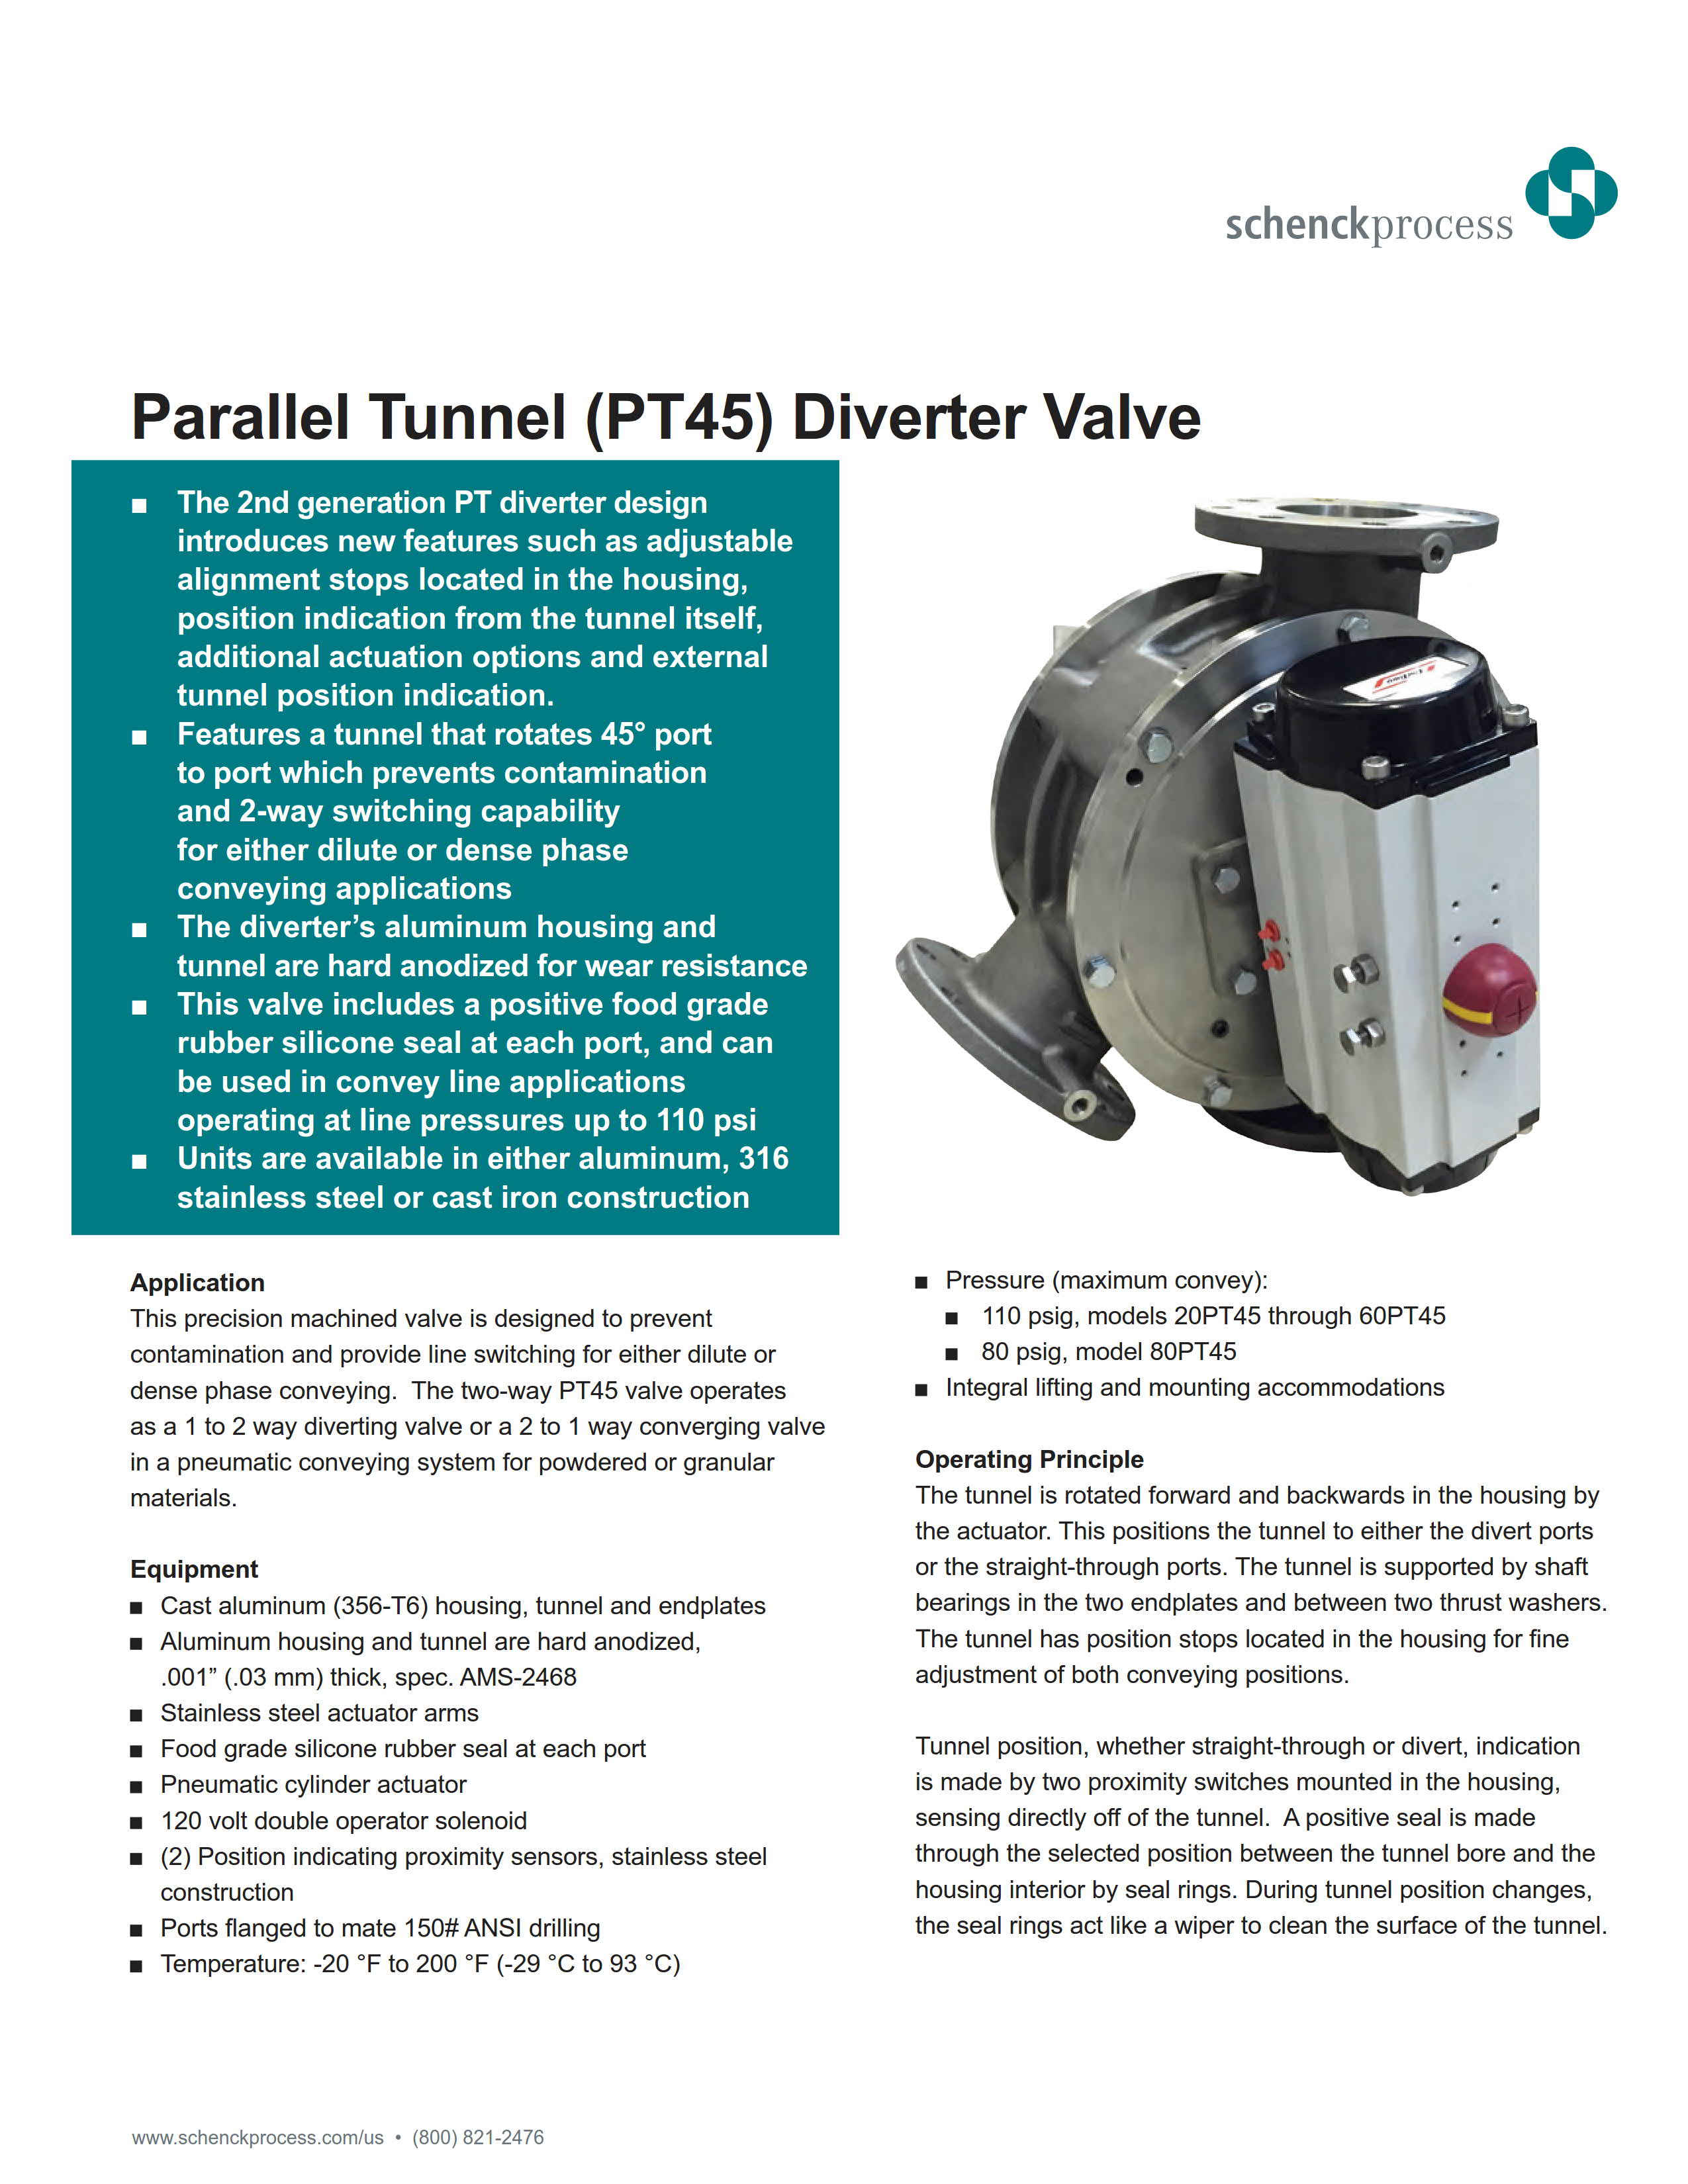 Parallel Tunnel (PT45) Diverter Valve